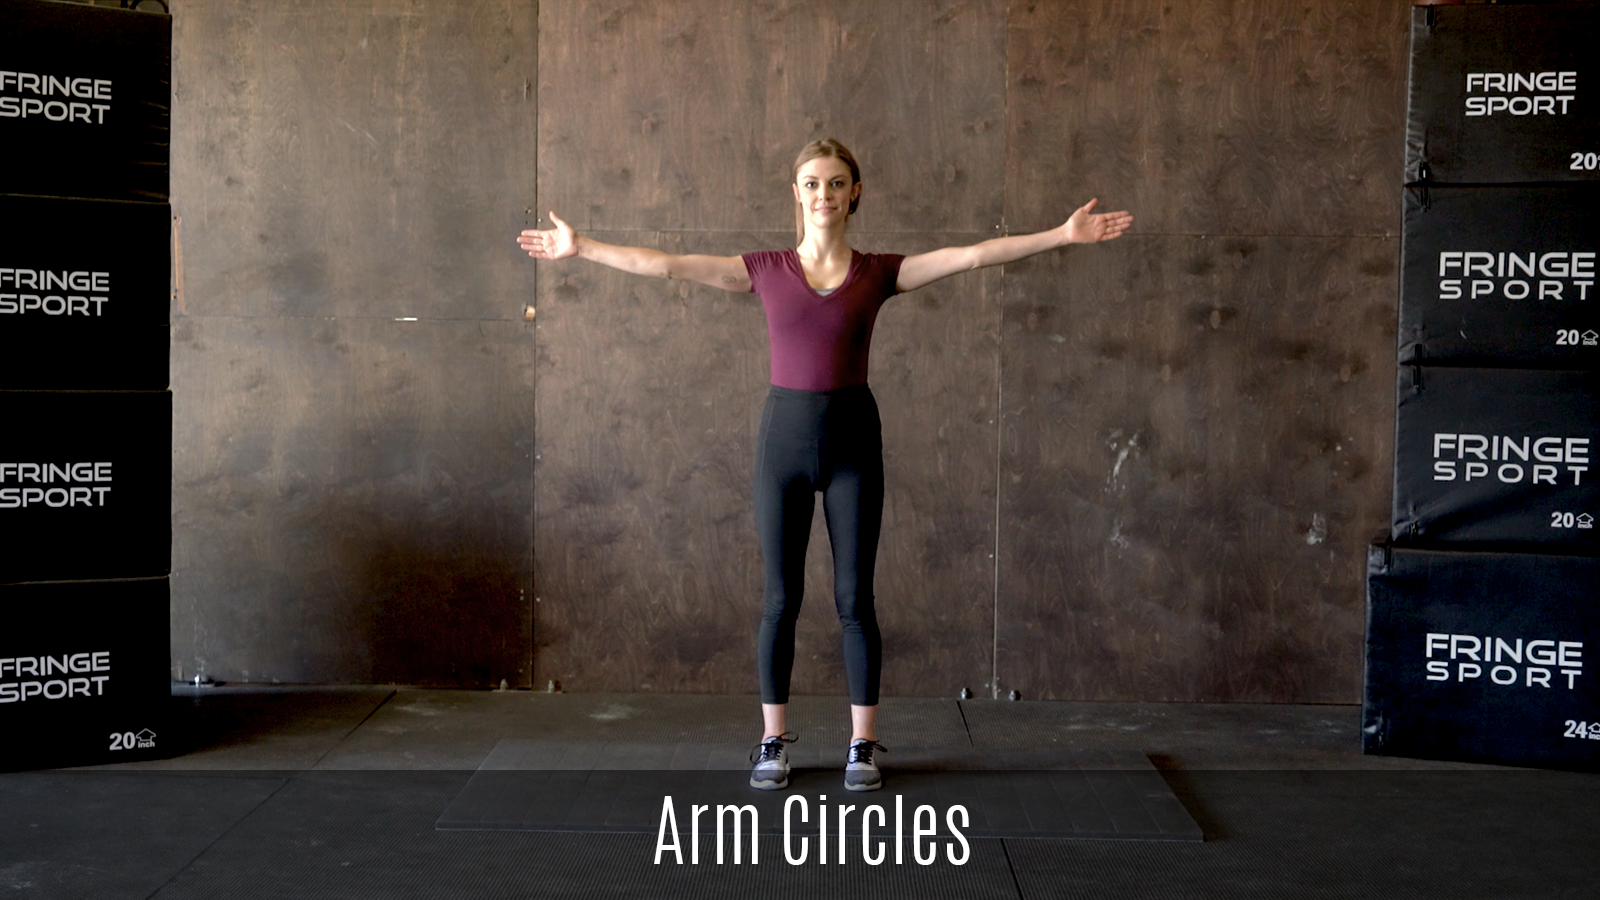 arm circles exercise demo